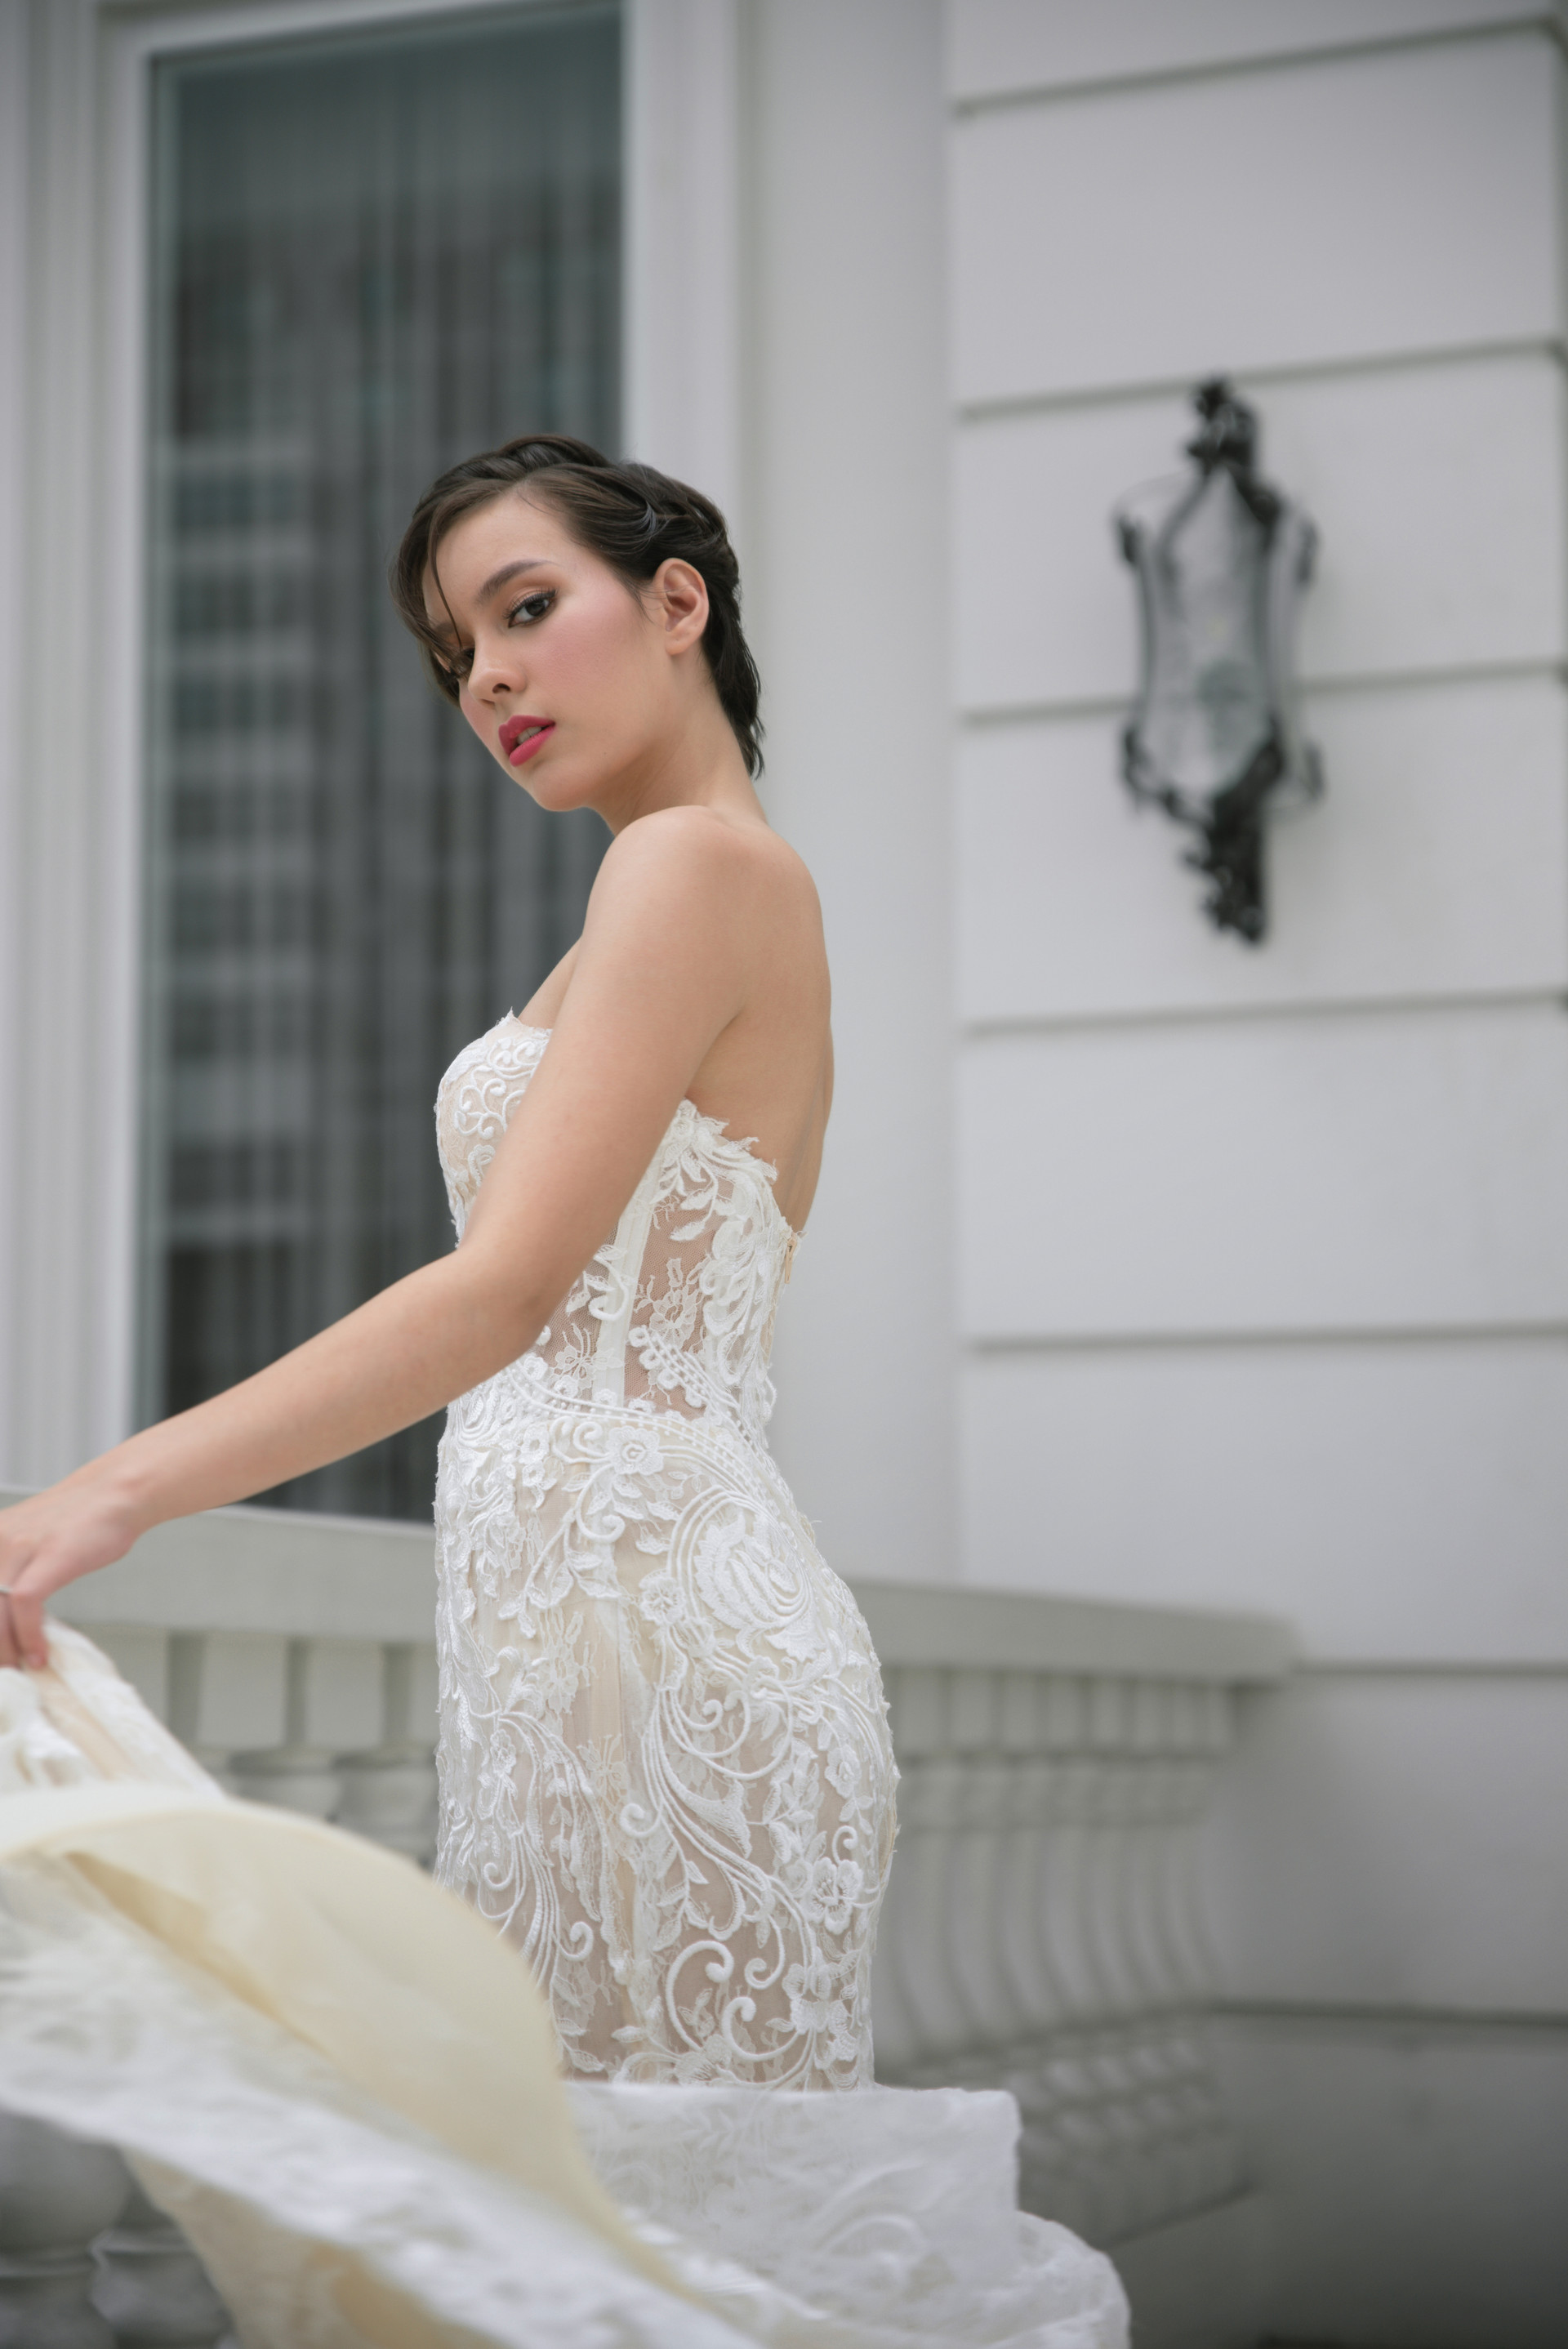 For Wedding Essentials Philippines Photo by Erron Ocampo of MetroPhoto Makeup by Nicole Ceballos Hair by Rudolf Davalos Gown by Hannah Kong